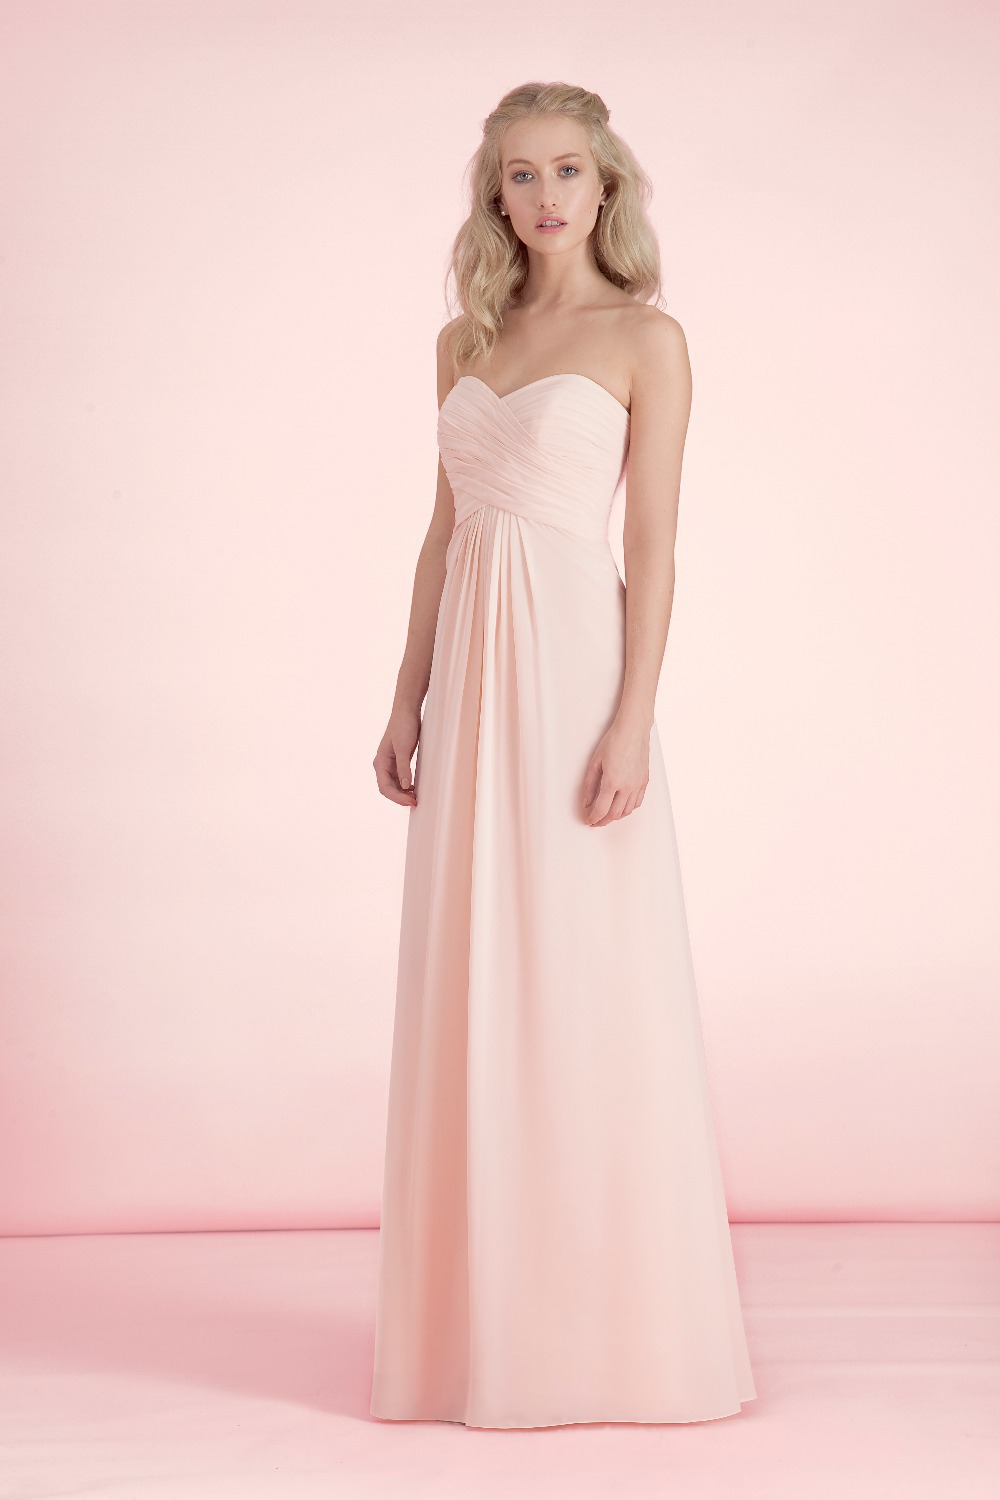 High Quality Wholesale light pink bridesmaid dress from China ...